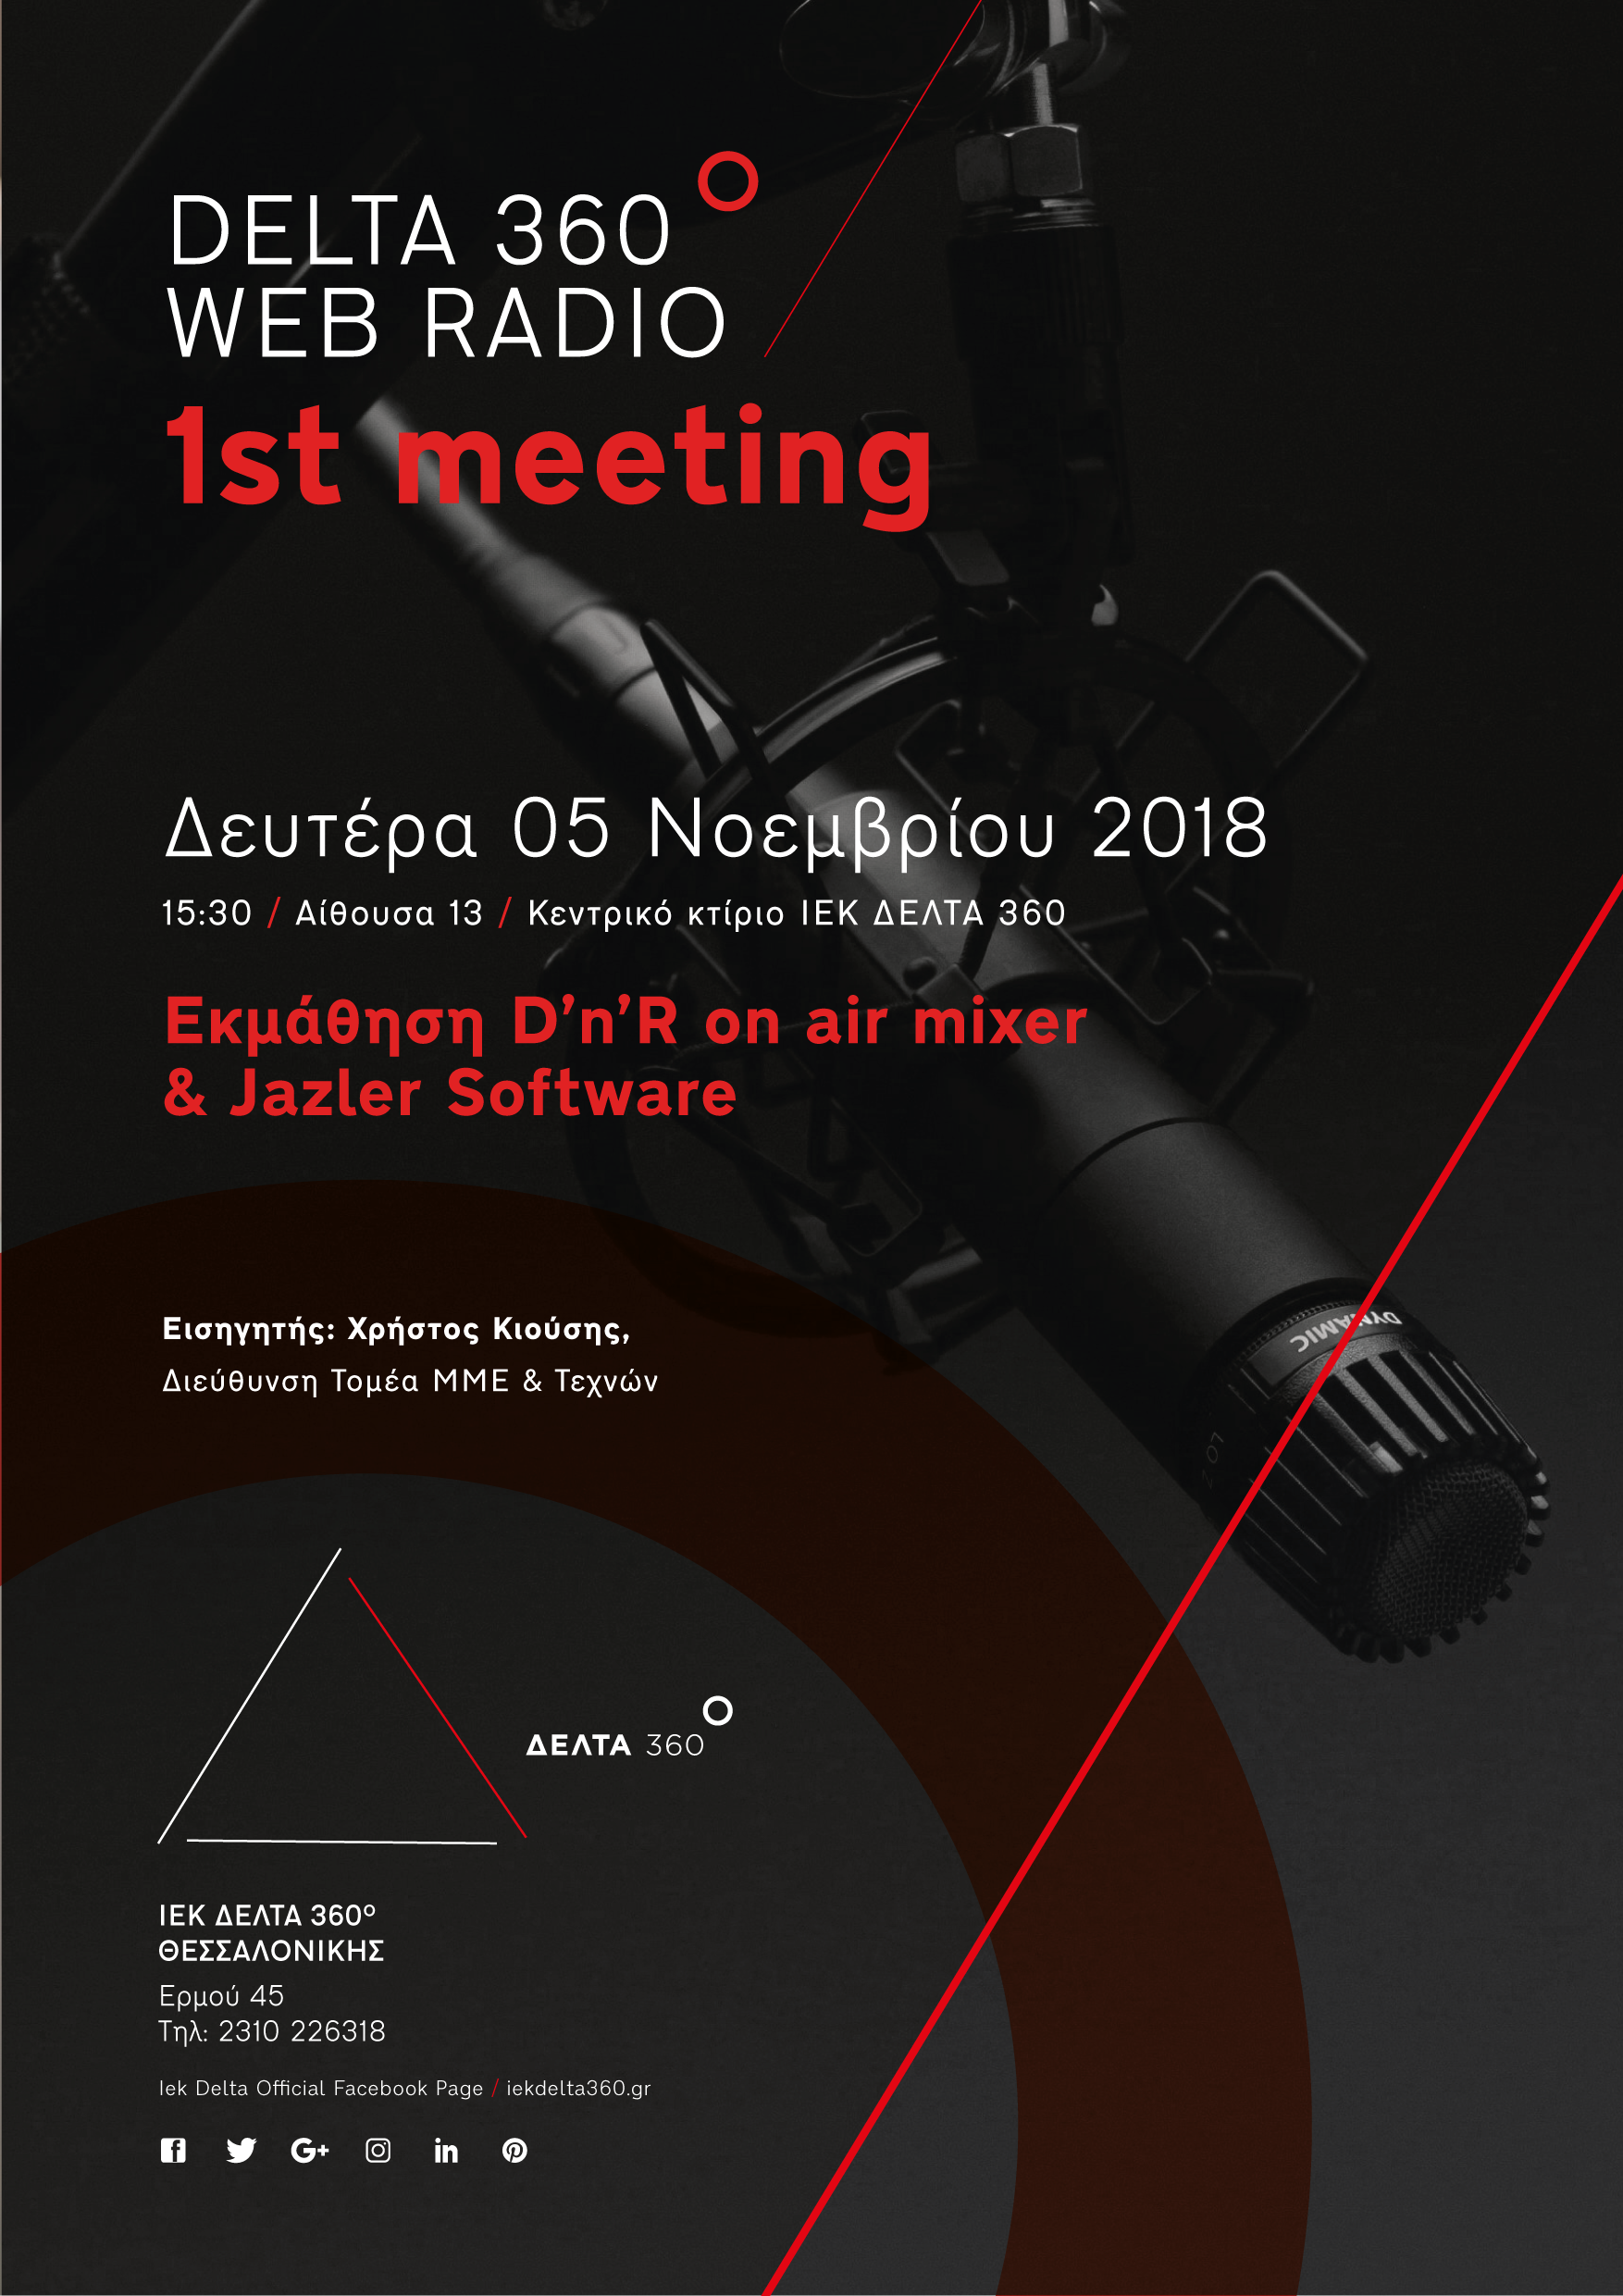 skg-1stmeeting-web-radio-01.png